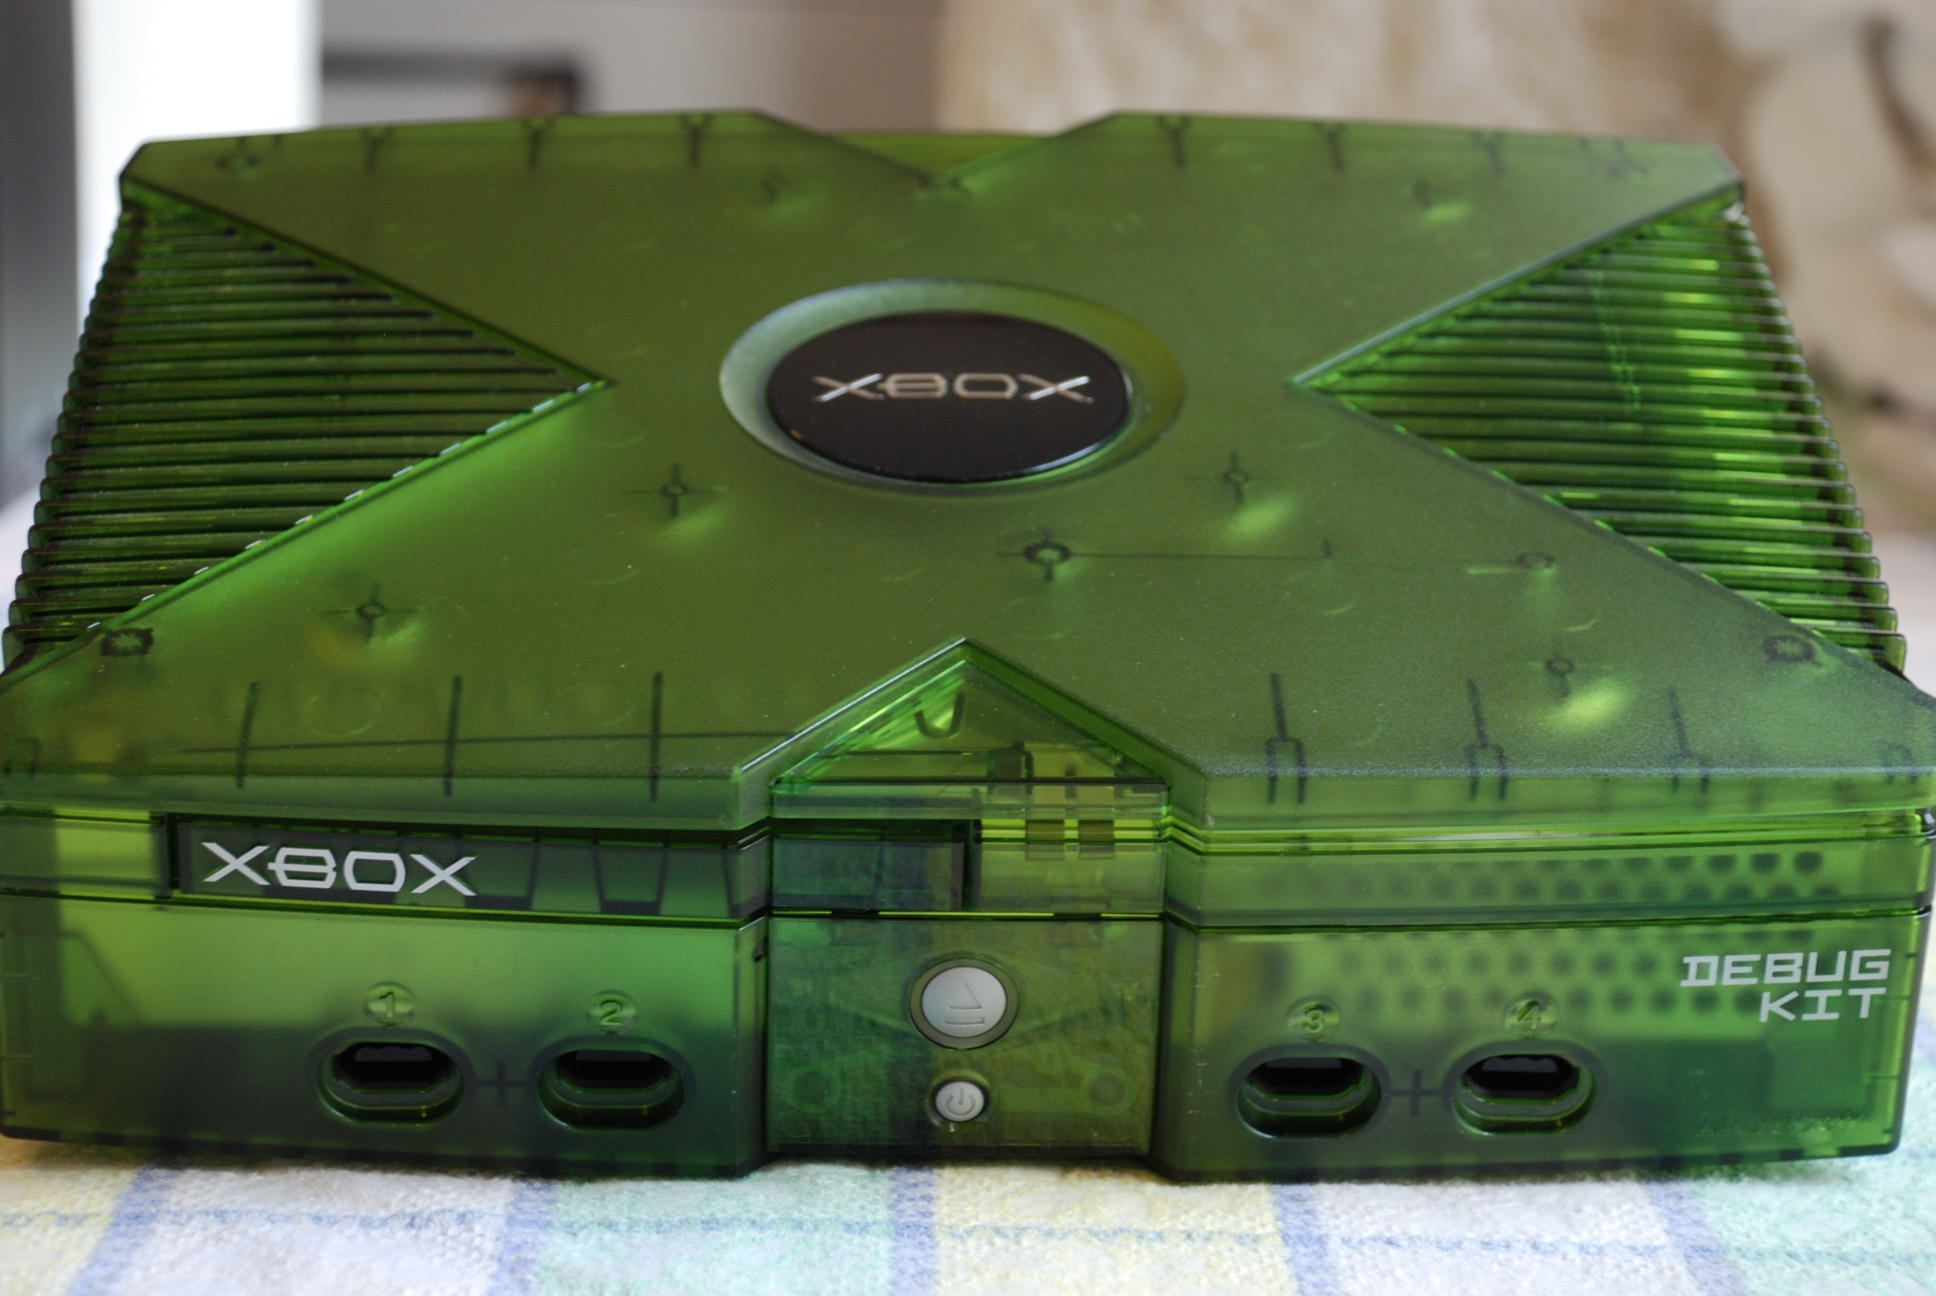 Original Xbox games are coming to Xbox One